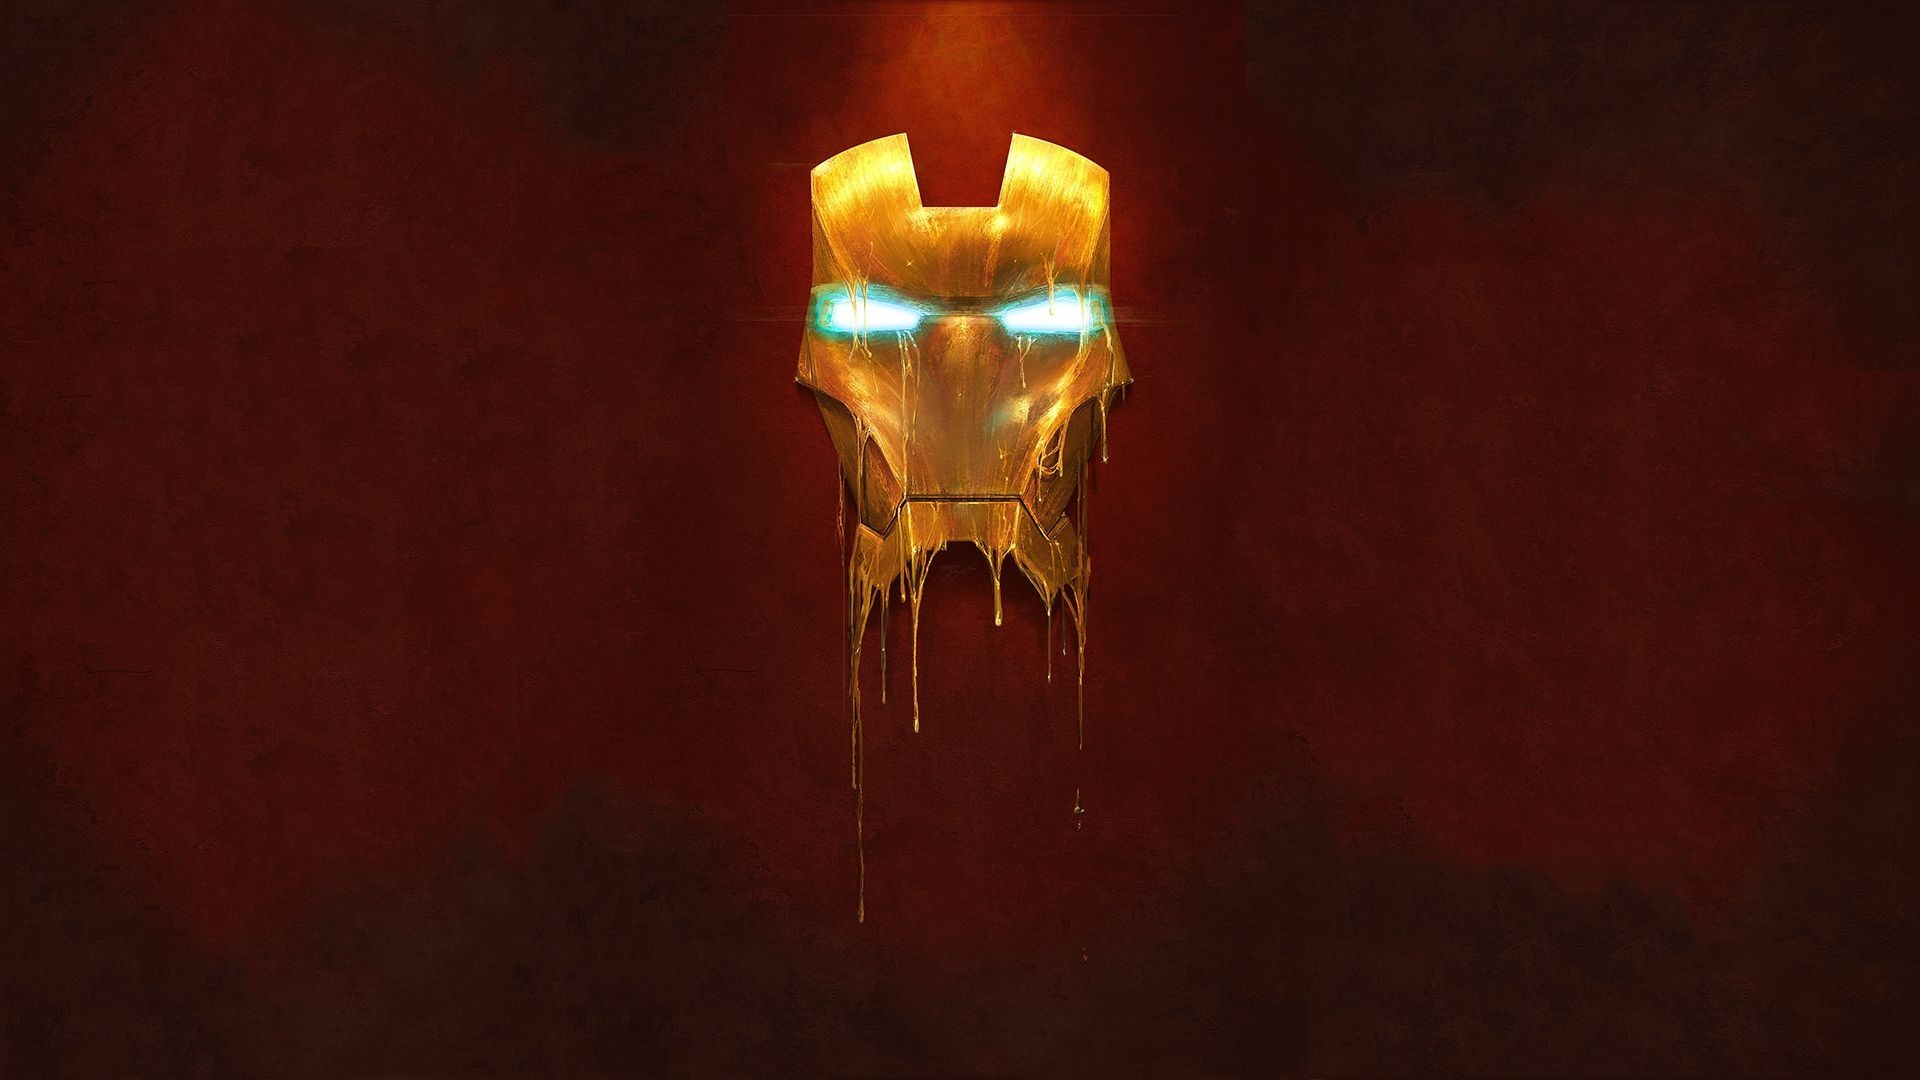 1920x1080 Wallpaper Iron Man